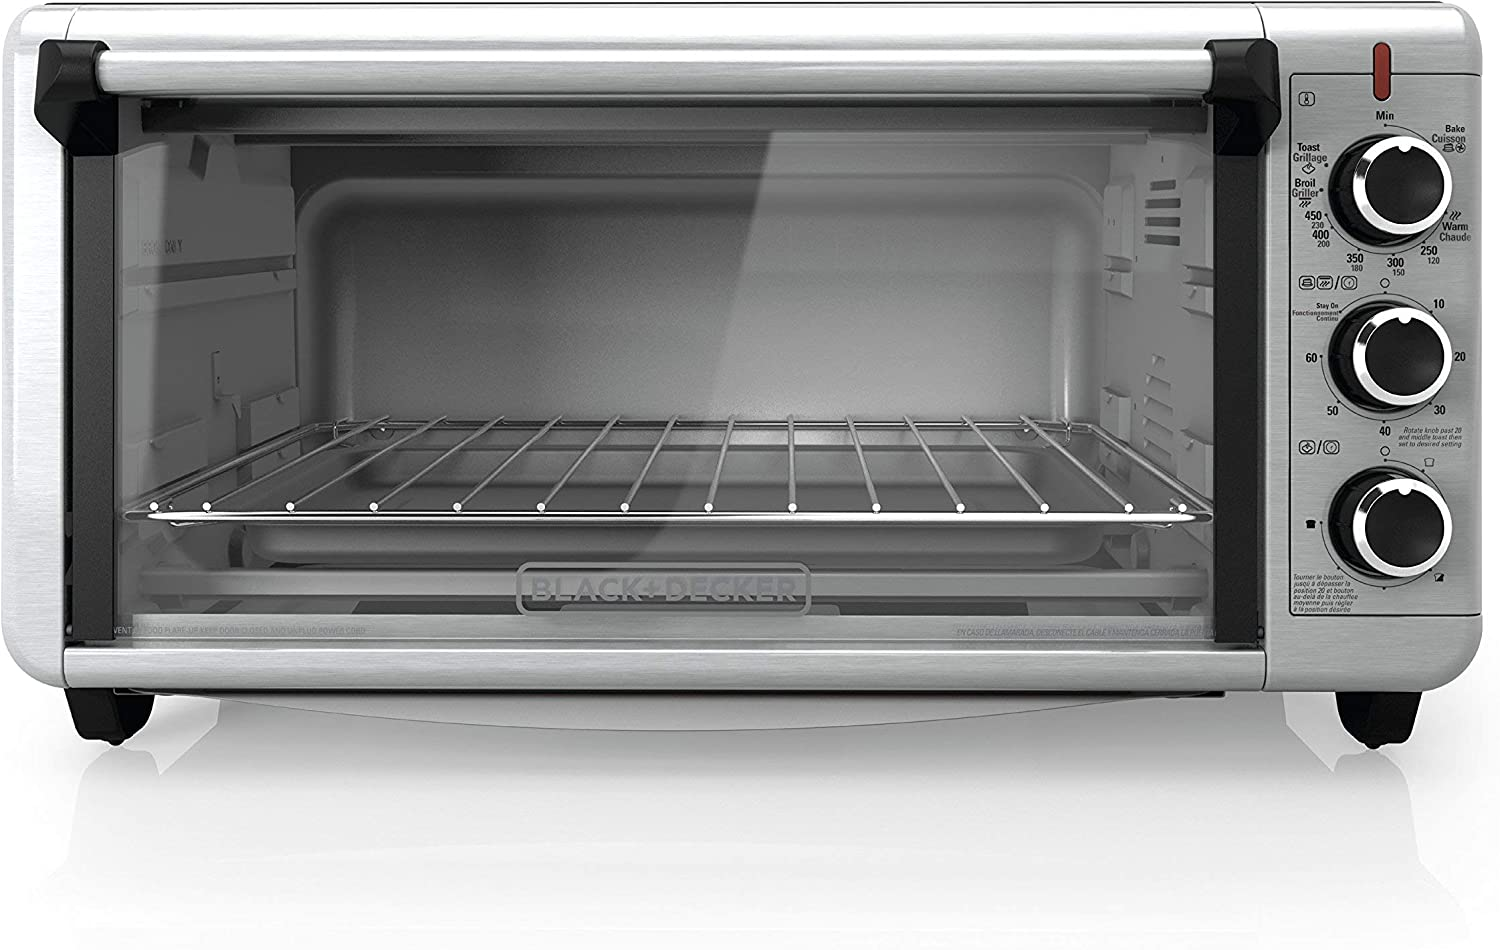 BLACK DECKER TO3240XSBD 8-Slice Extra Wide Convection Countertop Toaster Oven, Includes Bake Pan, Broil Rack Toasting Rack, Stainless Steel Black Convection Toaster Oven Renewed